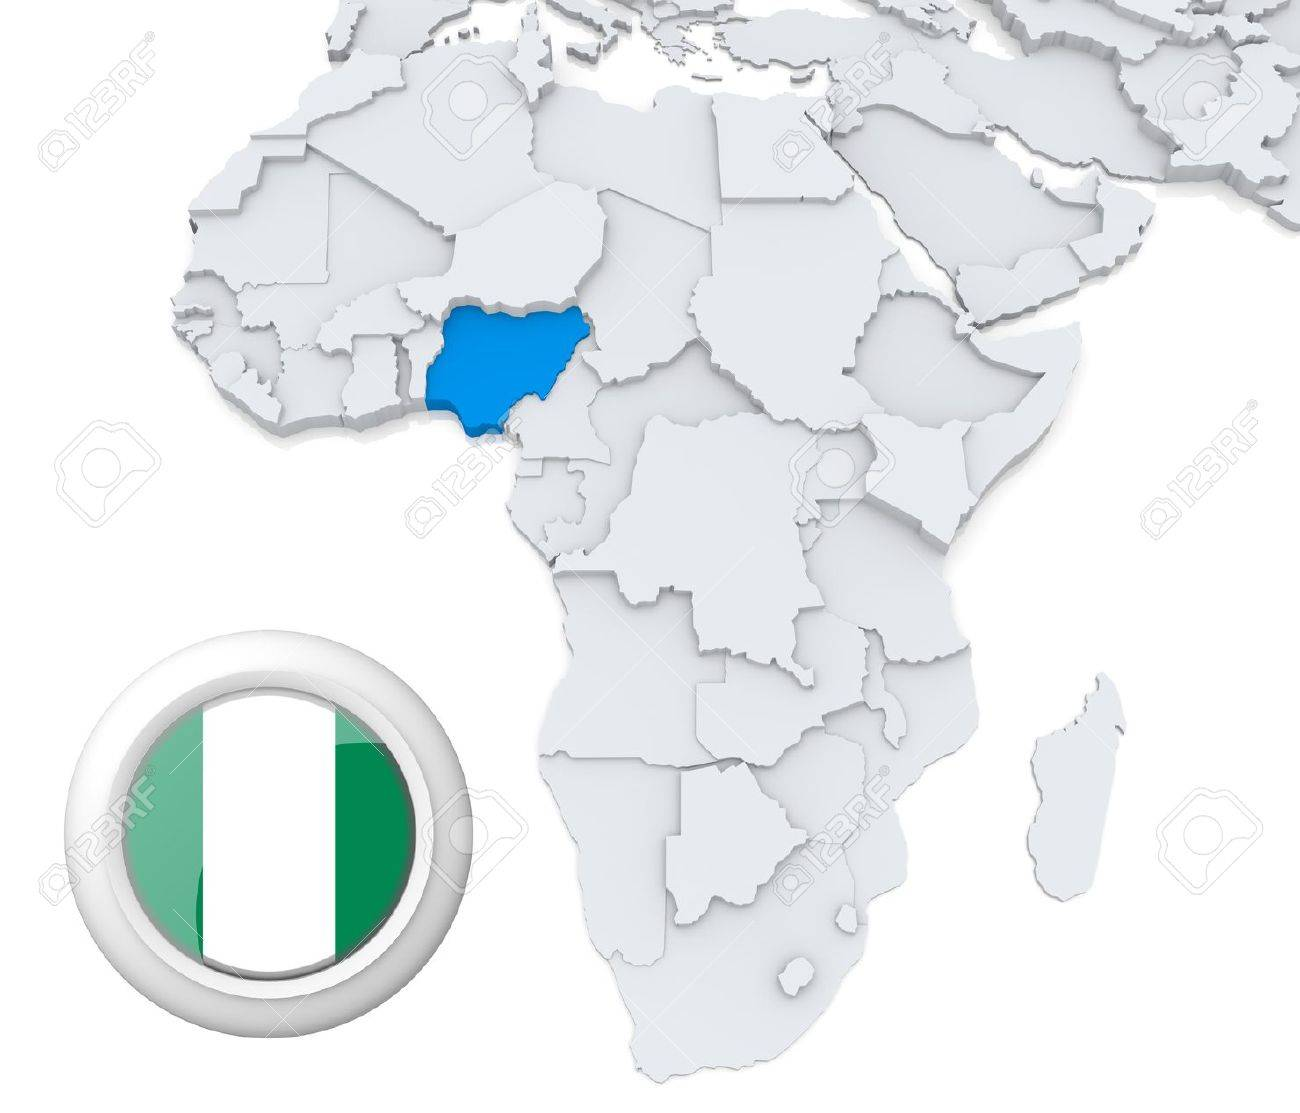 Map Of Africa Showing Nigeria.3d Modeled Map Of Africa With Highlighted State Of Nigeria With